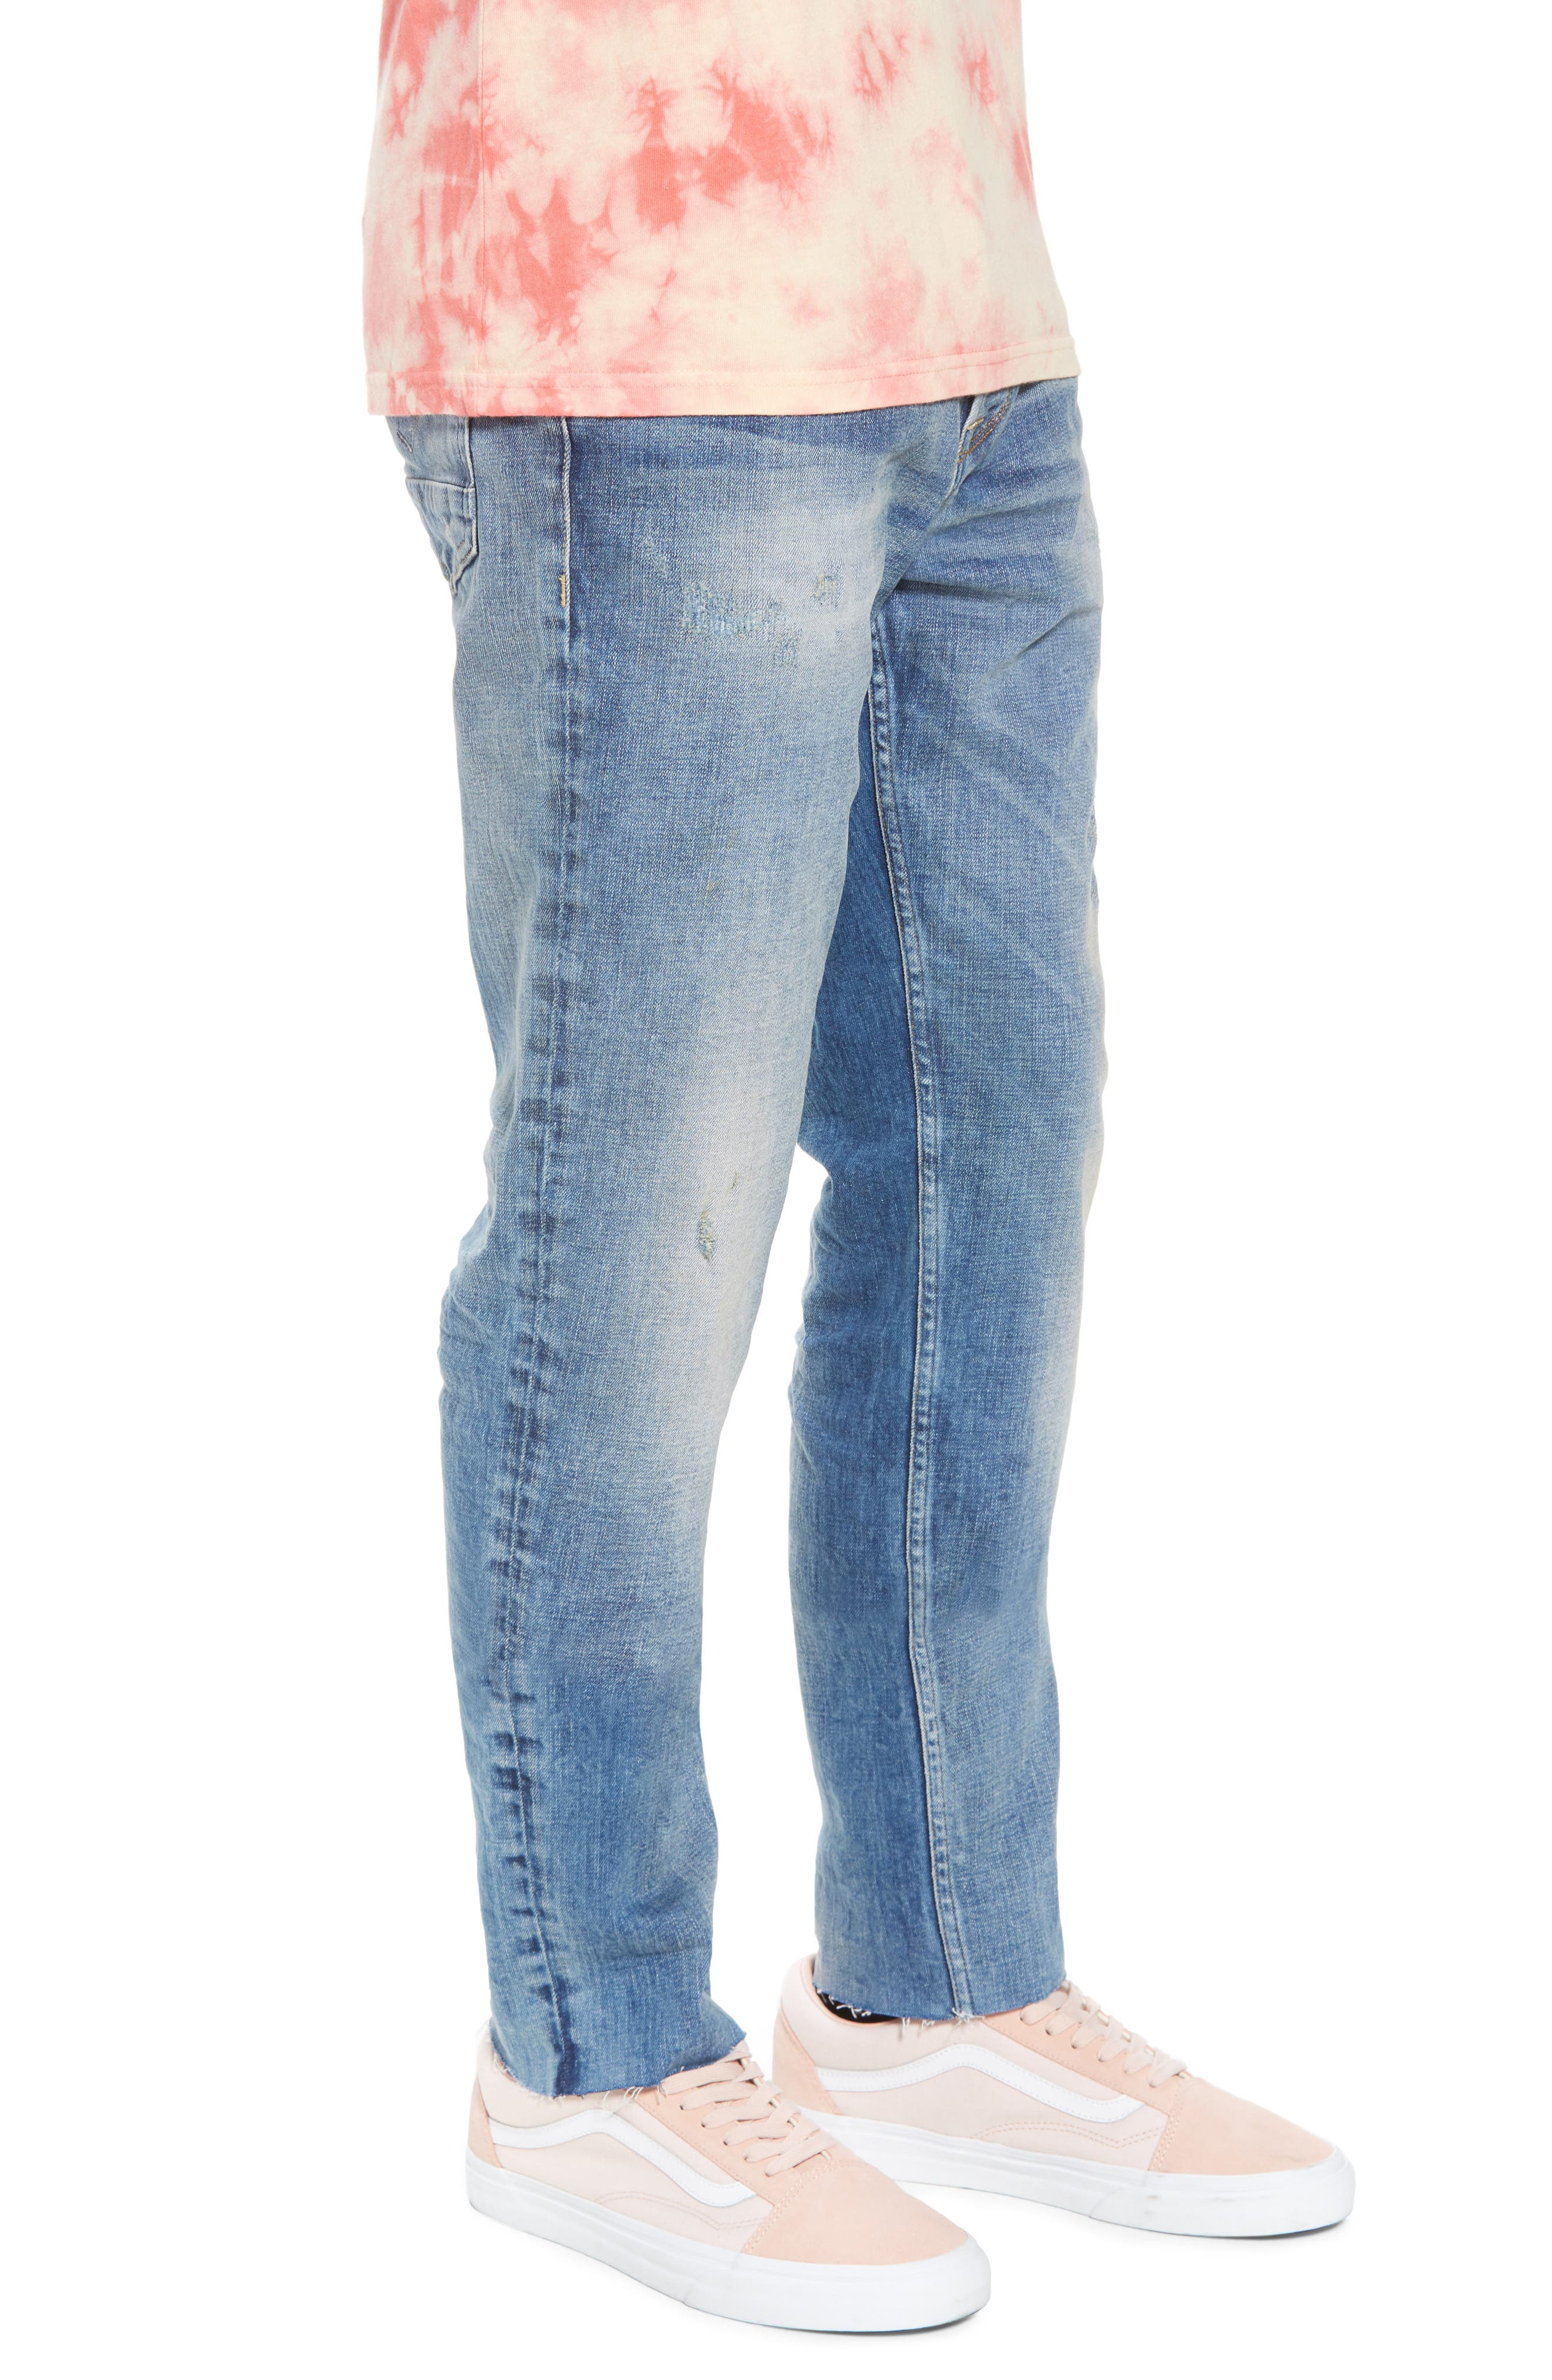 Sartor Slouchy Skinny Fit Jeans,                             Alternate thumbnail 3, color,                             429